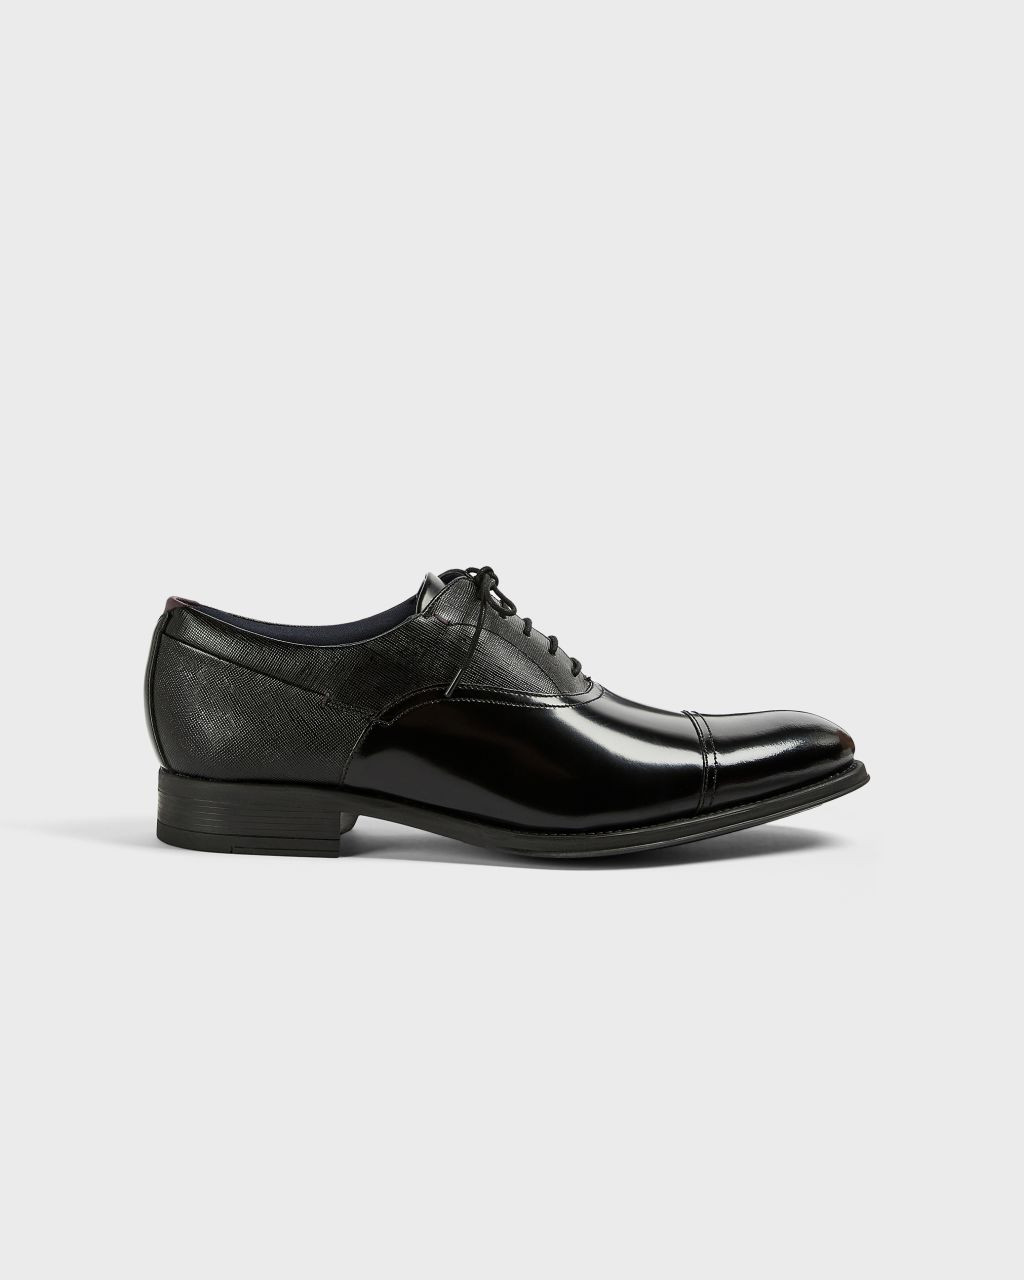 TED BAKER High Shine Leather Brogue | TED BAKER SALE